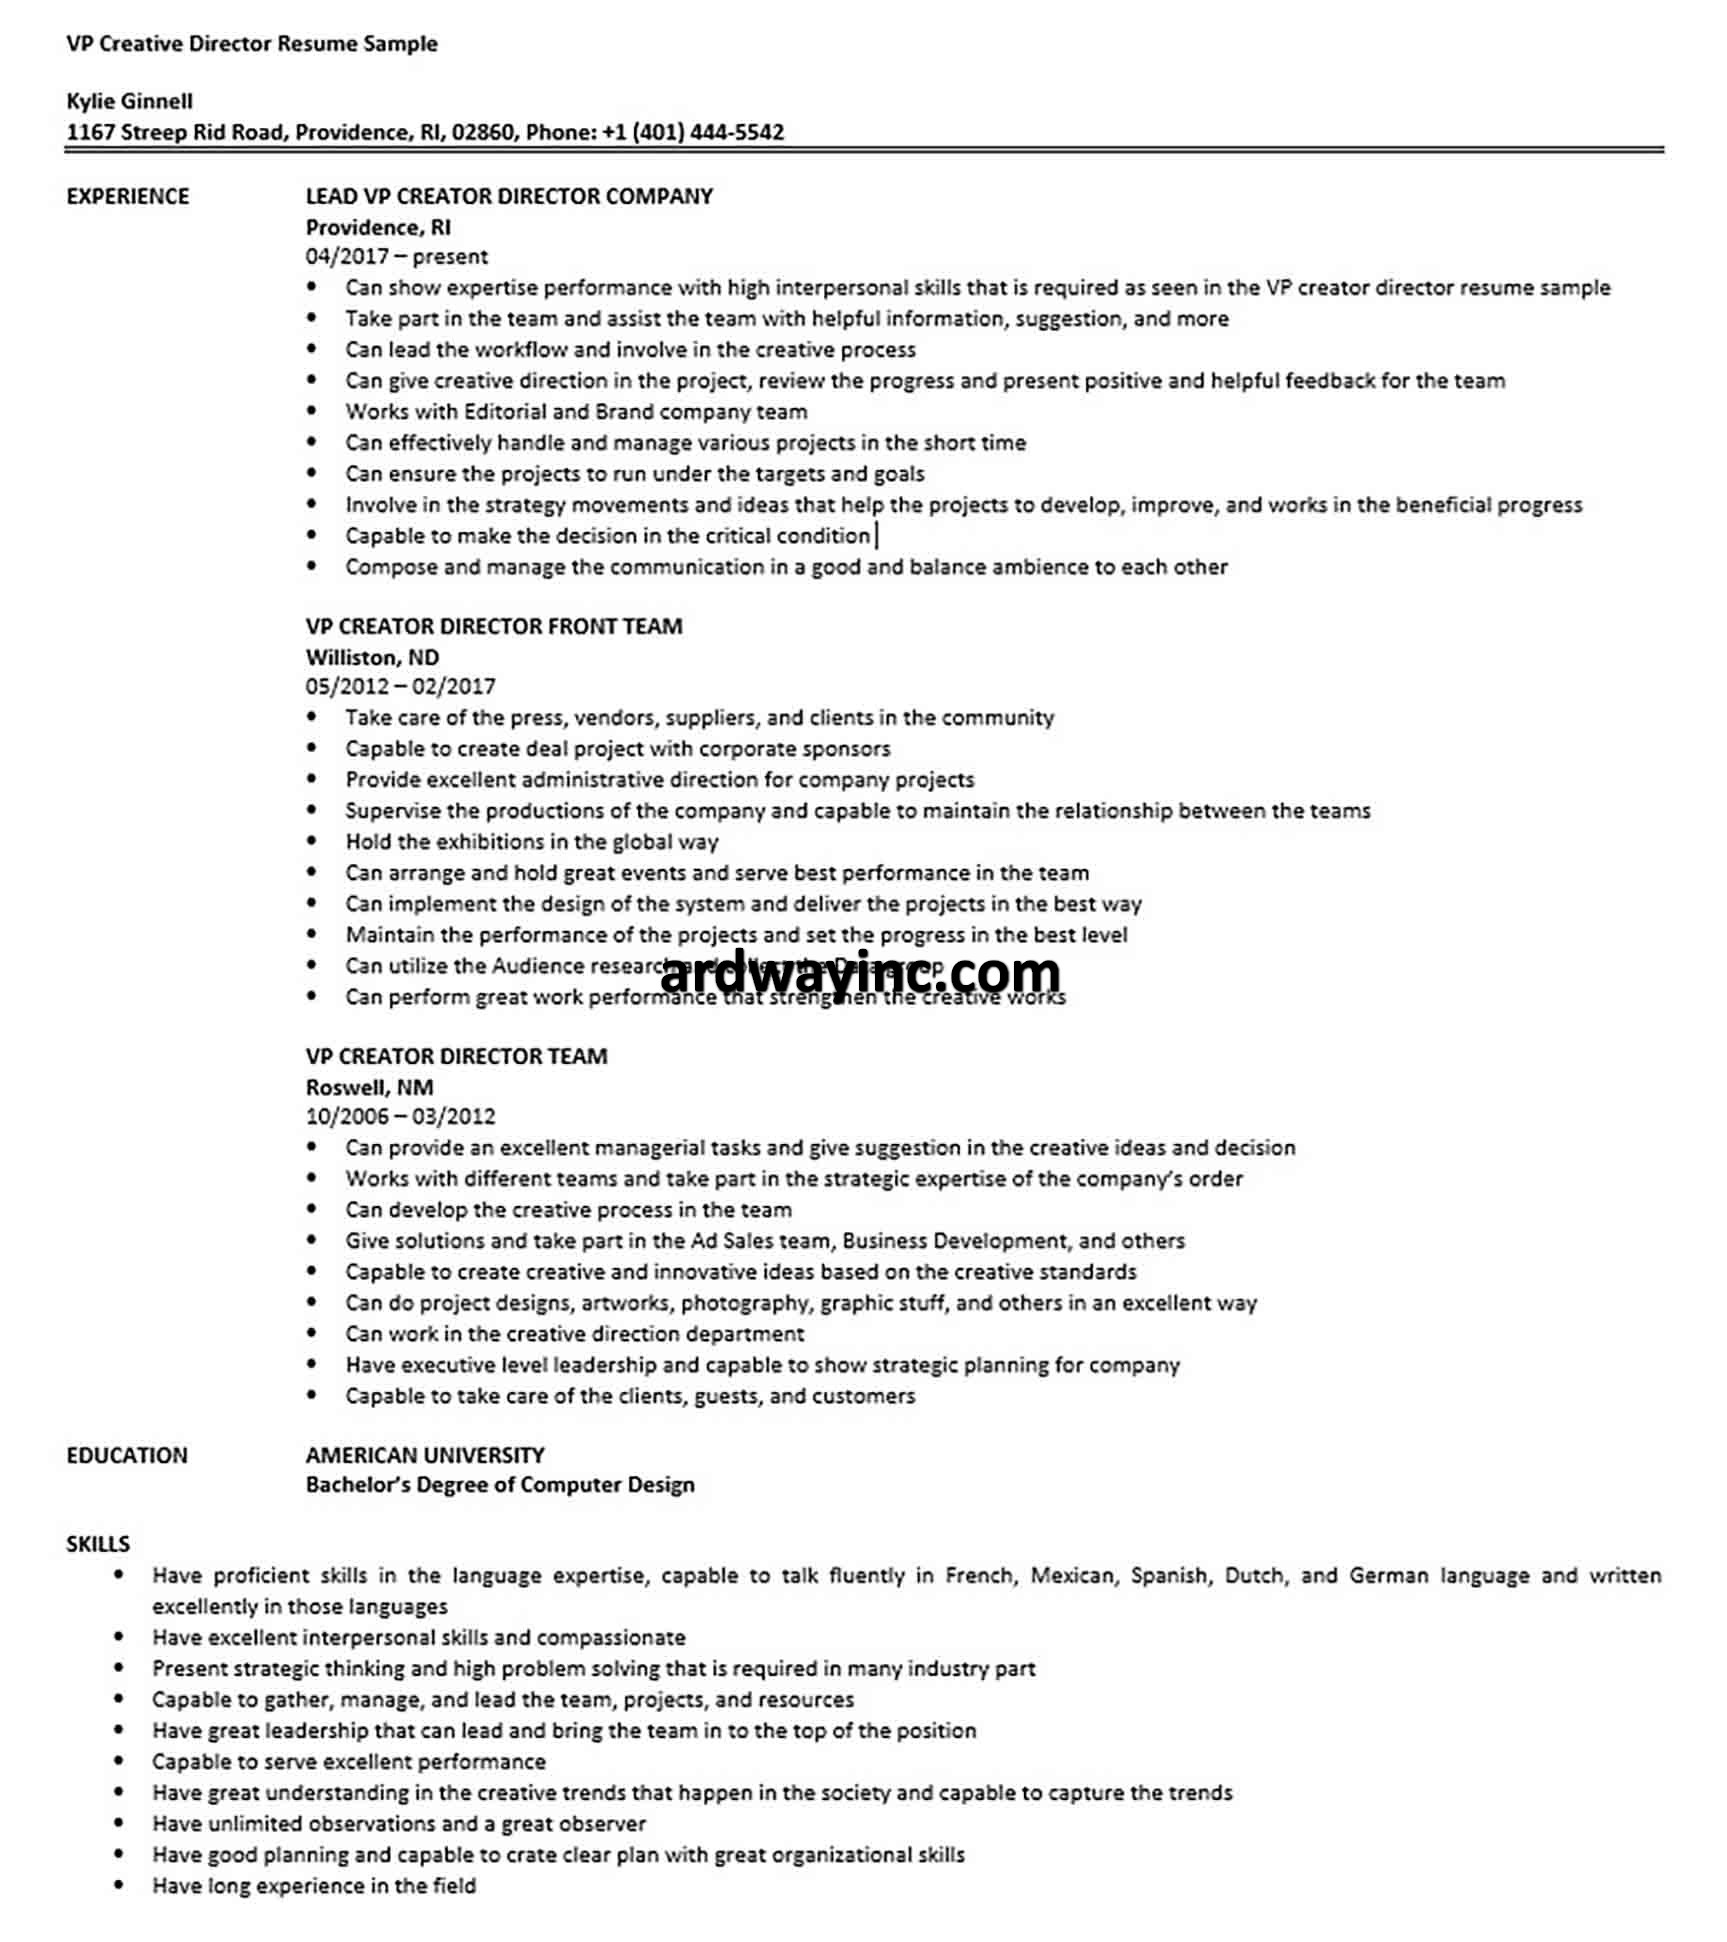 VP Creative Director Resume Sample